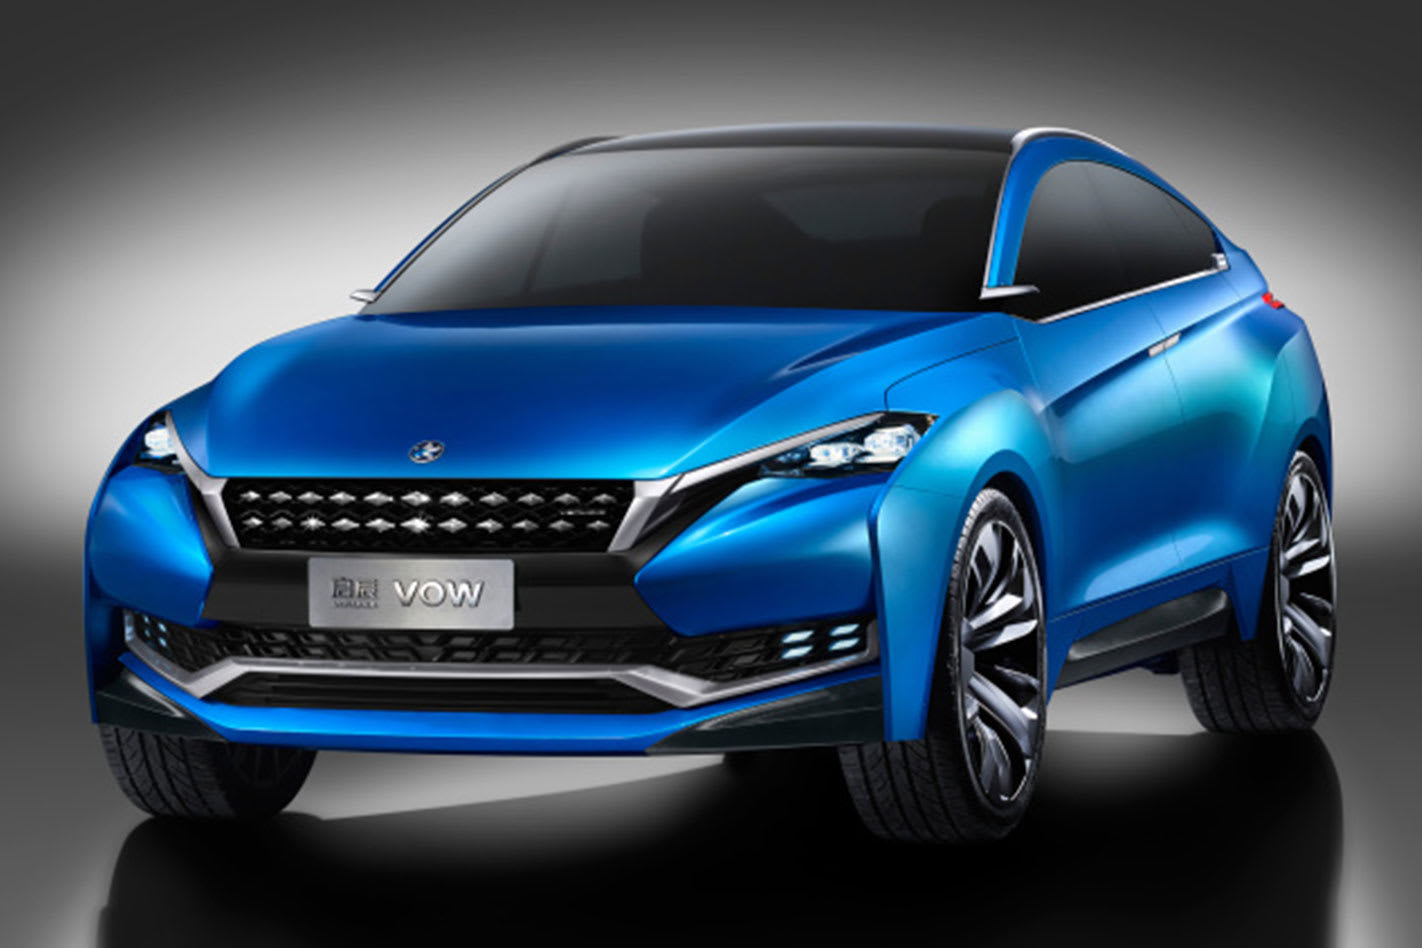 2016 Nissan-Dongfeng Venucia VOW